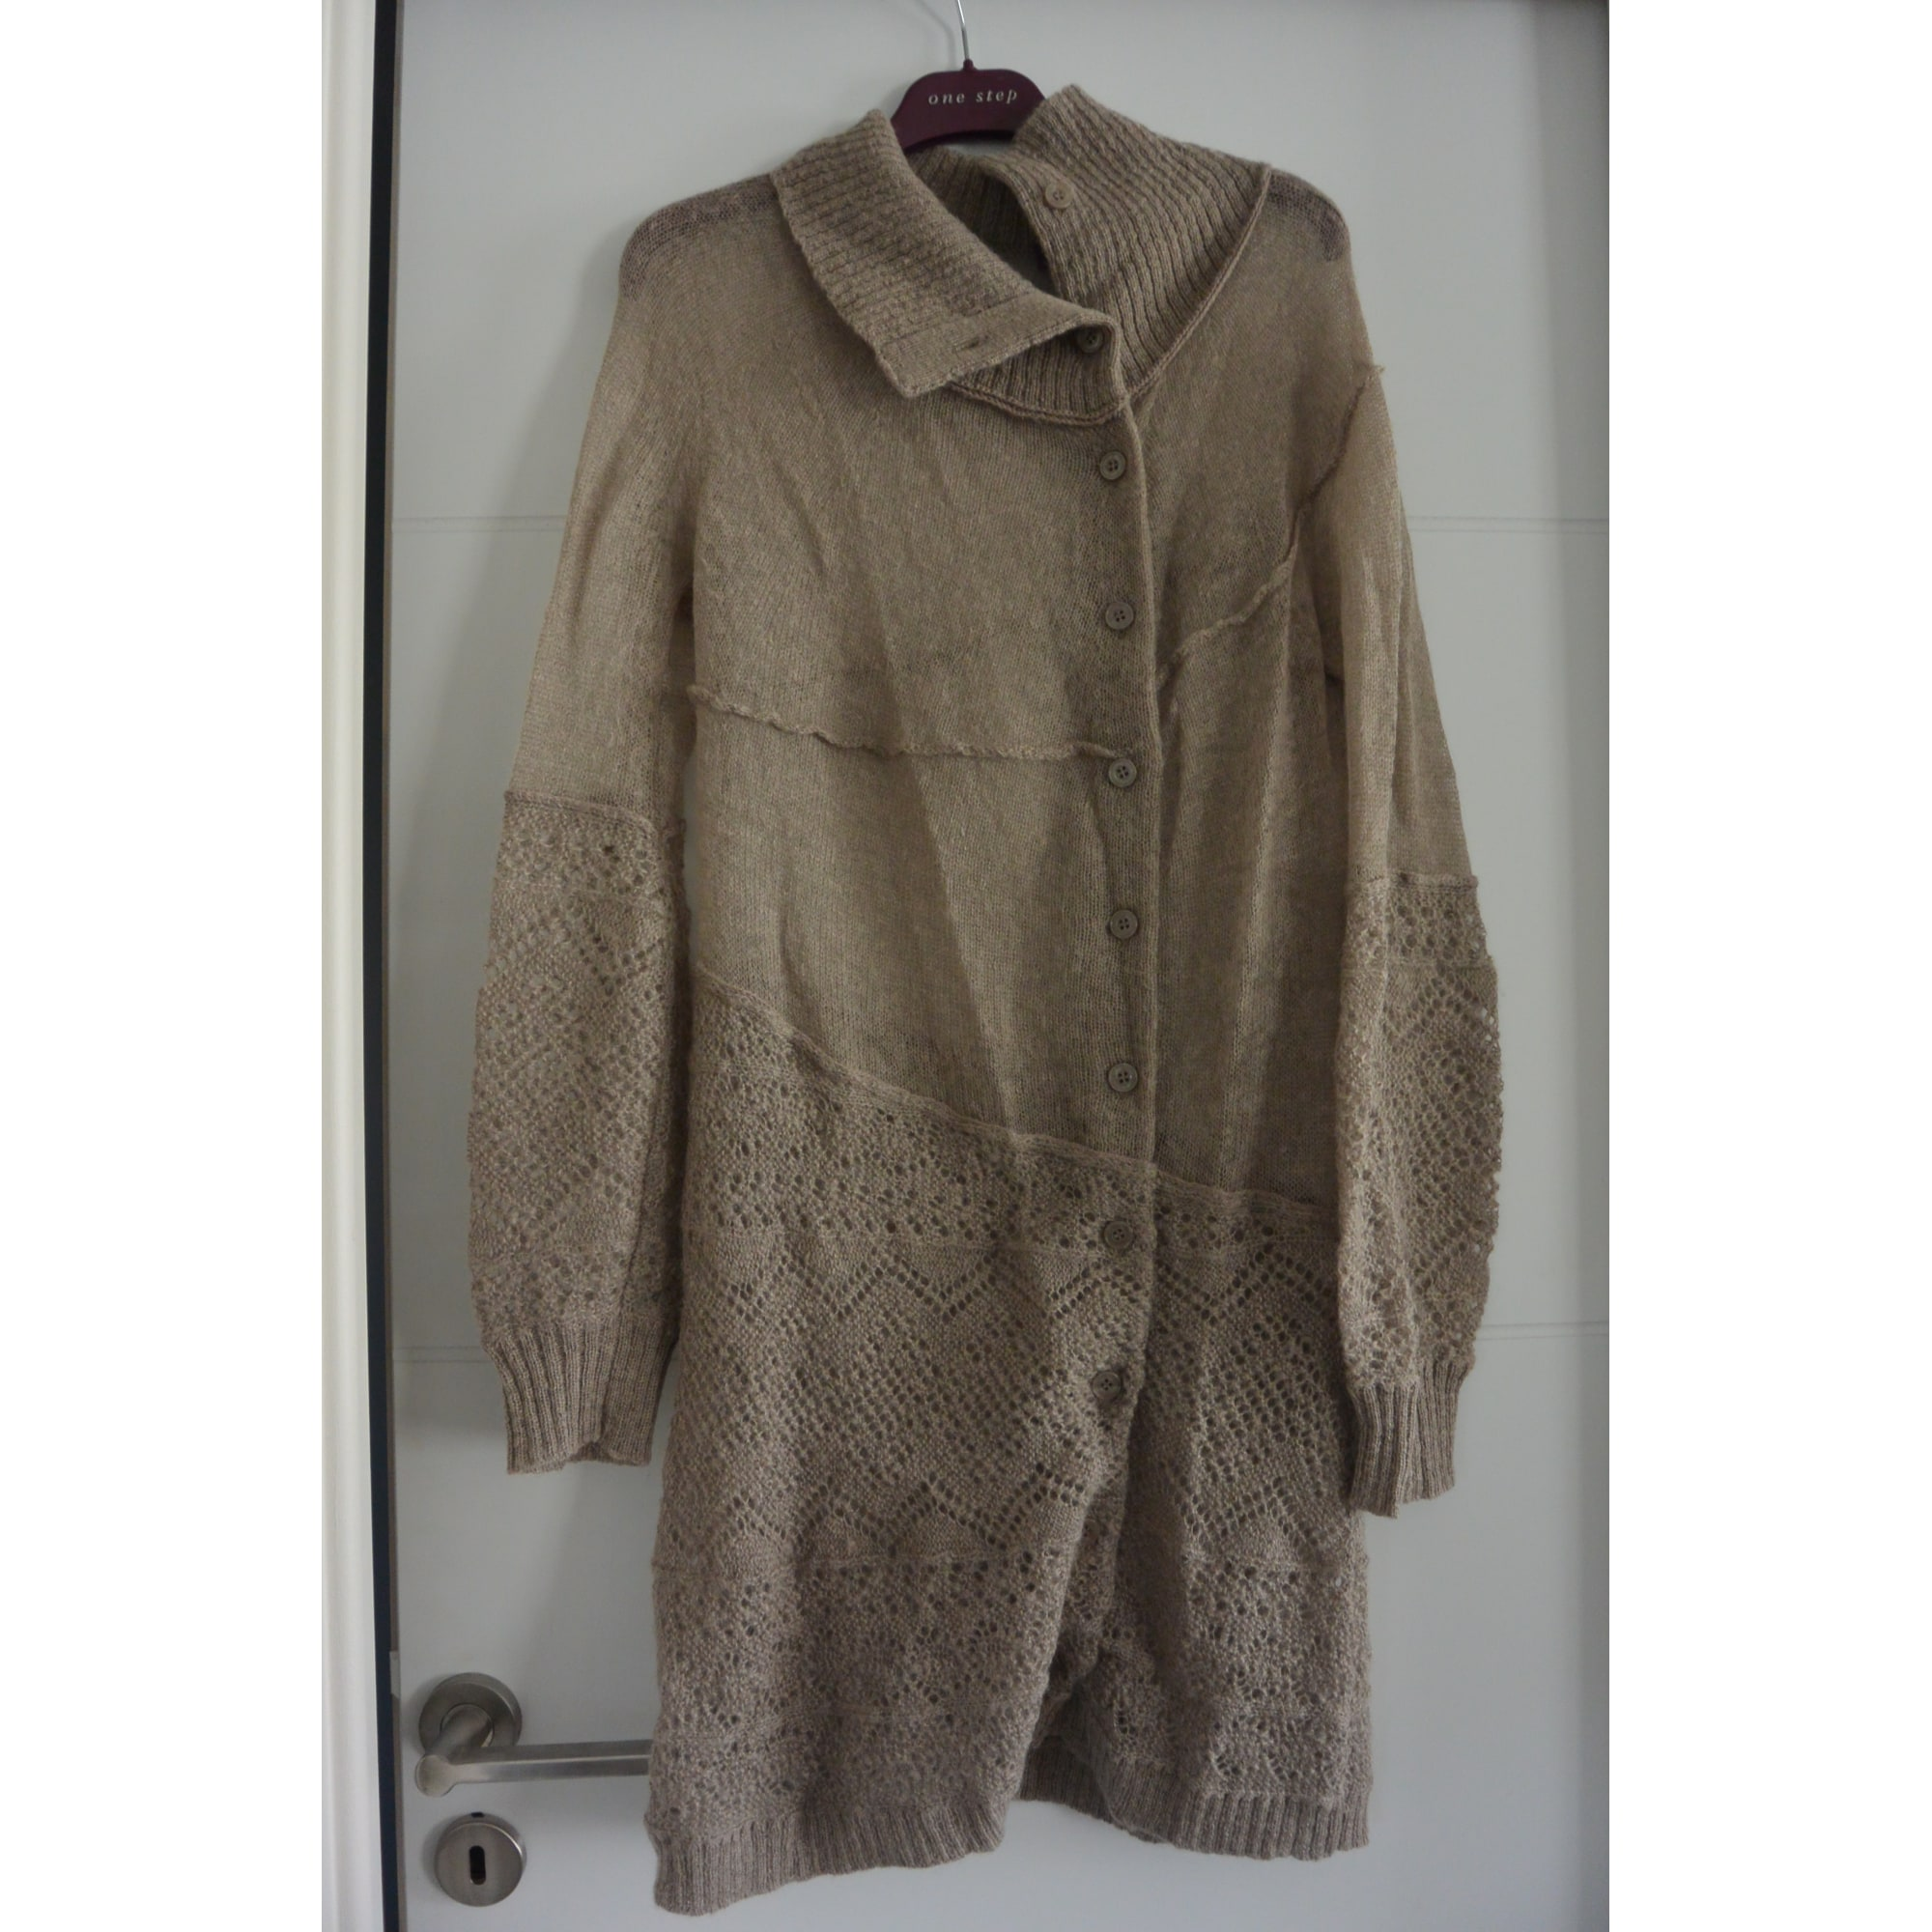 Pull tunique ONE STEP Beige, camel